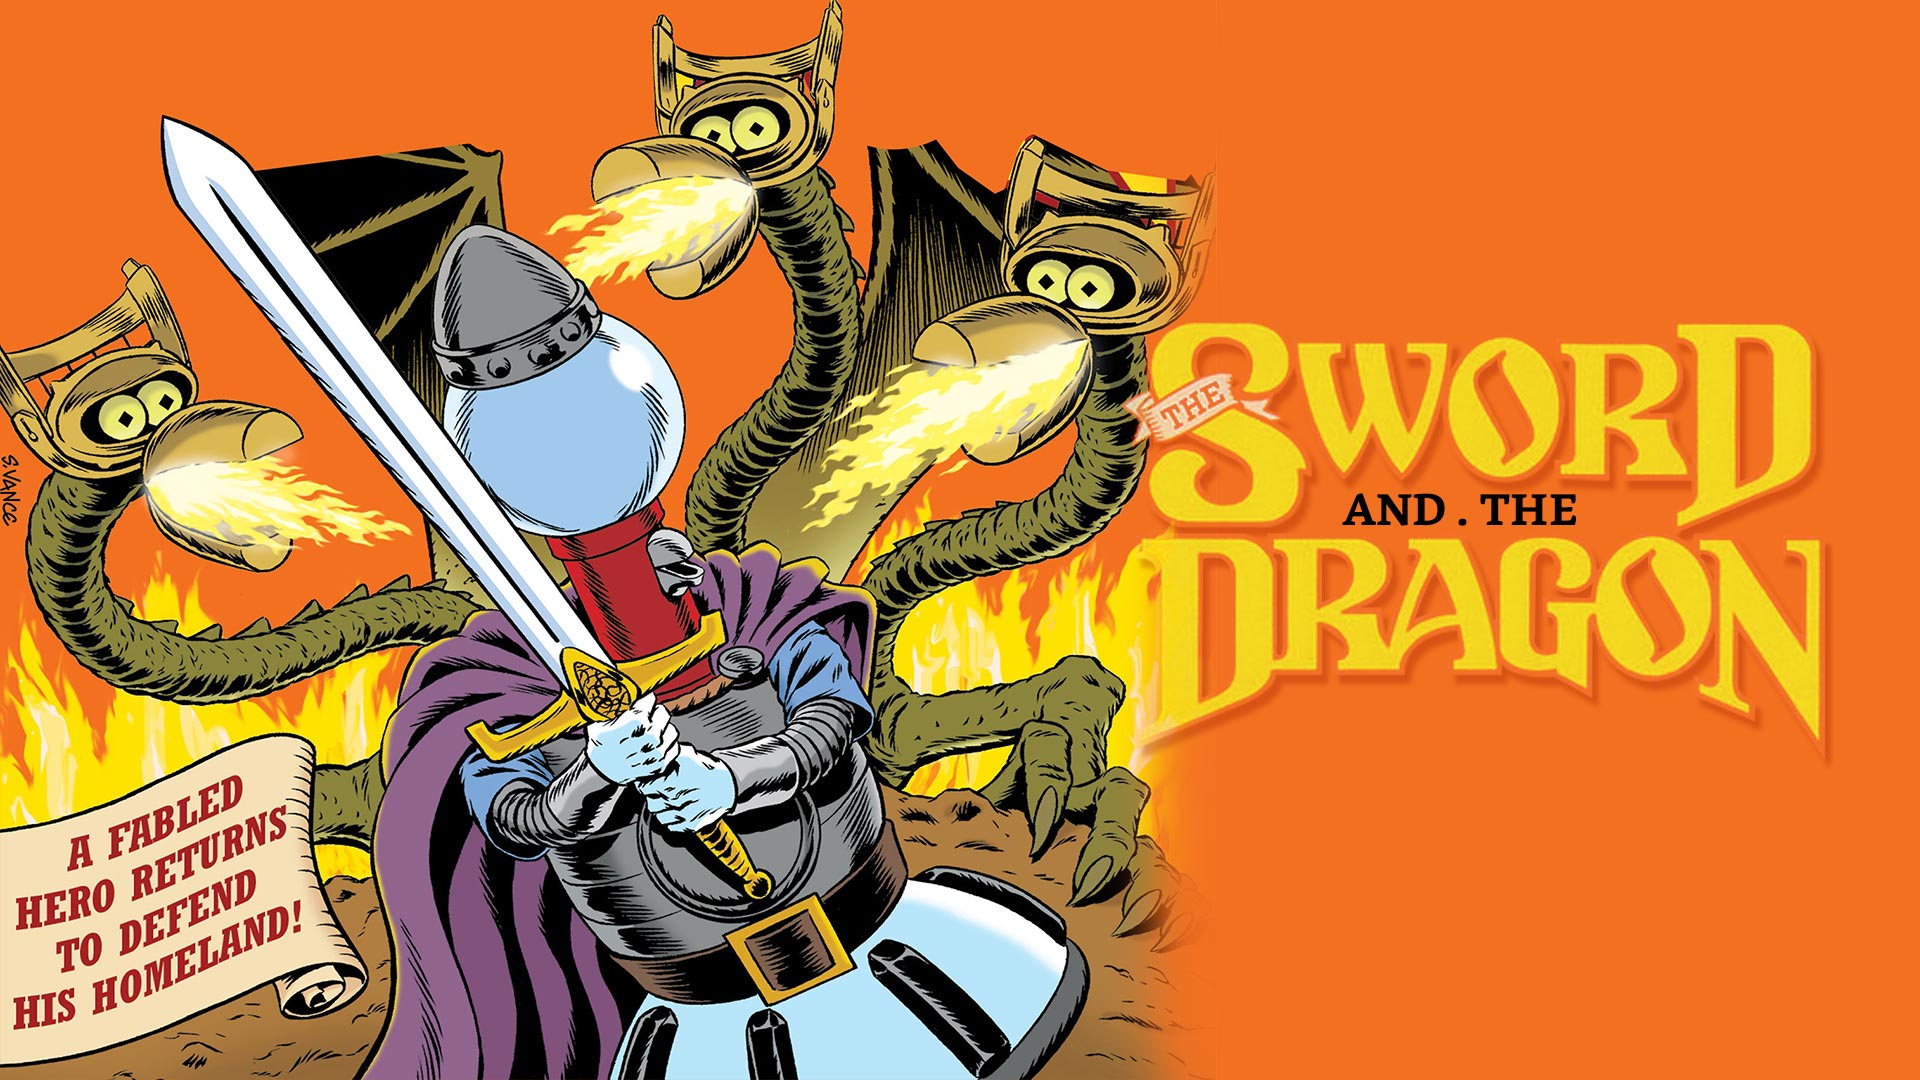 Mystery Science Theater 3000: The Sword And The Dragon